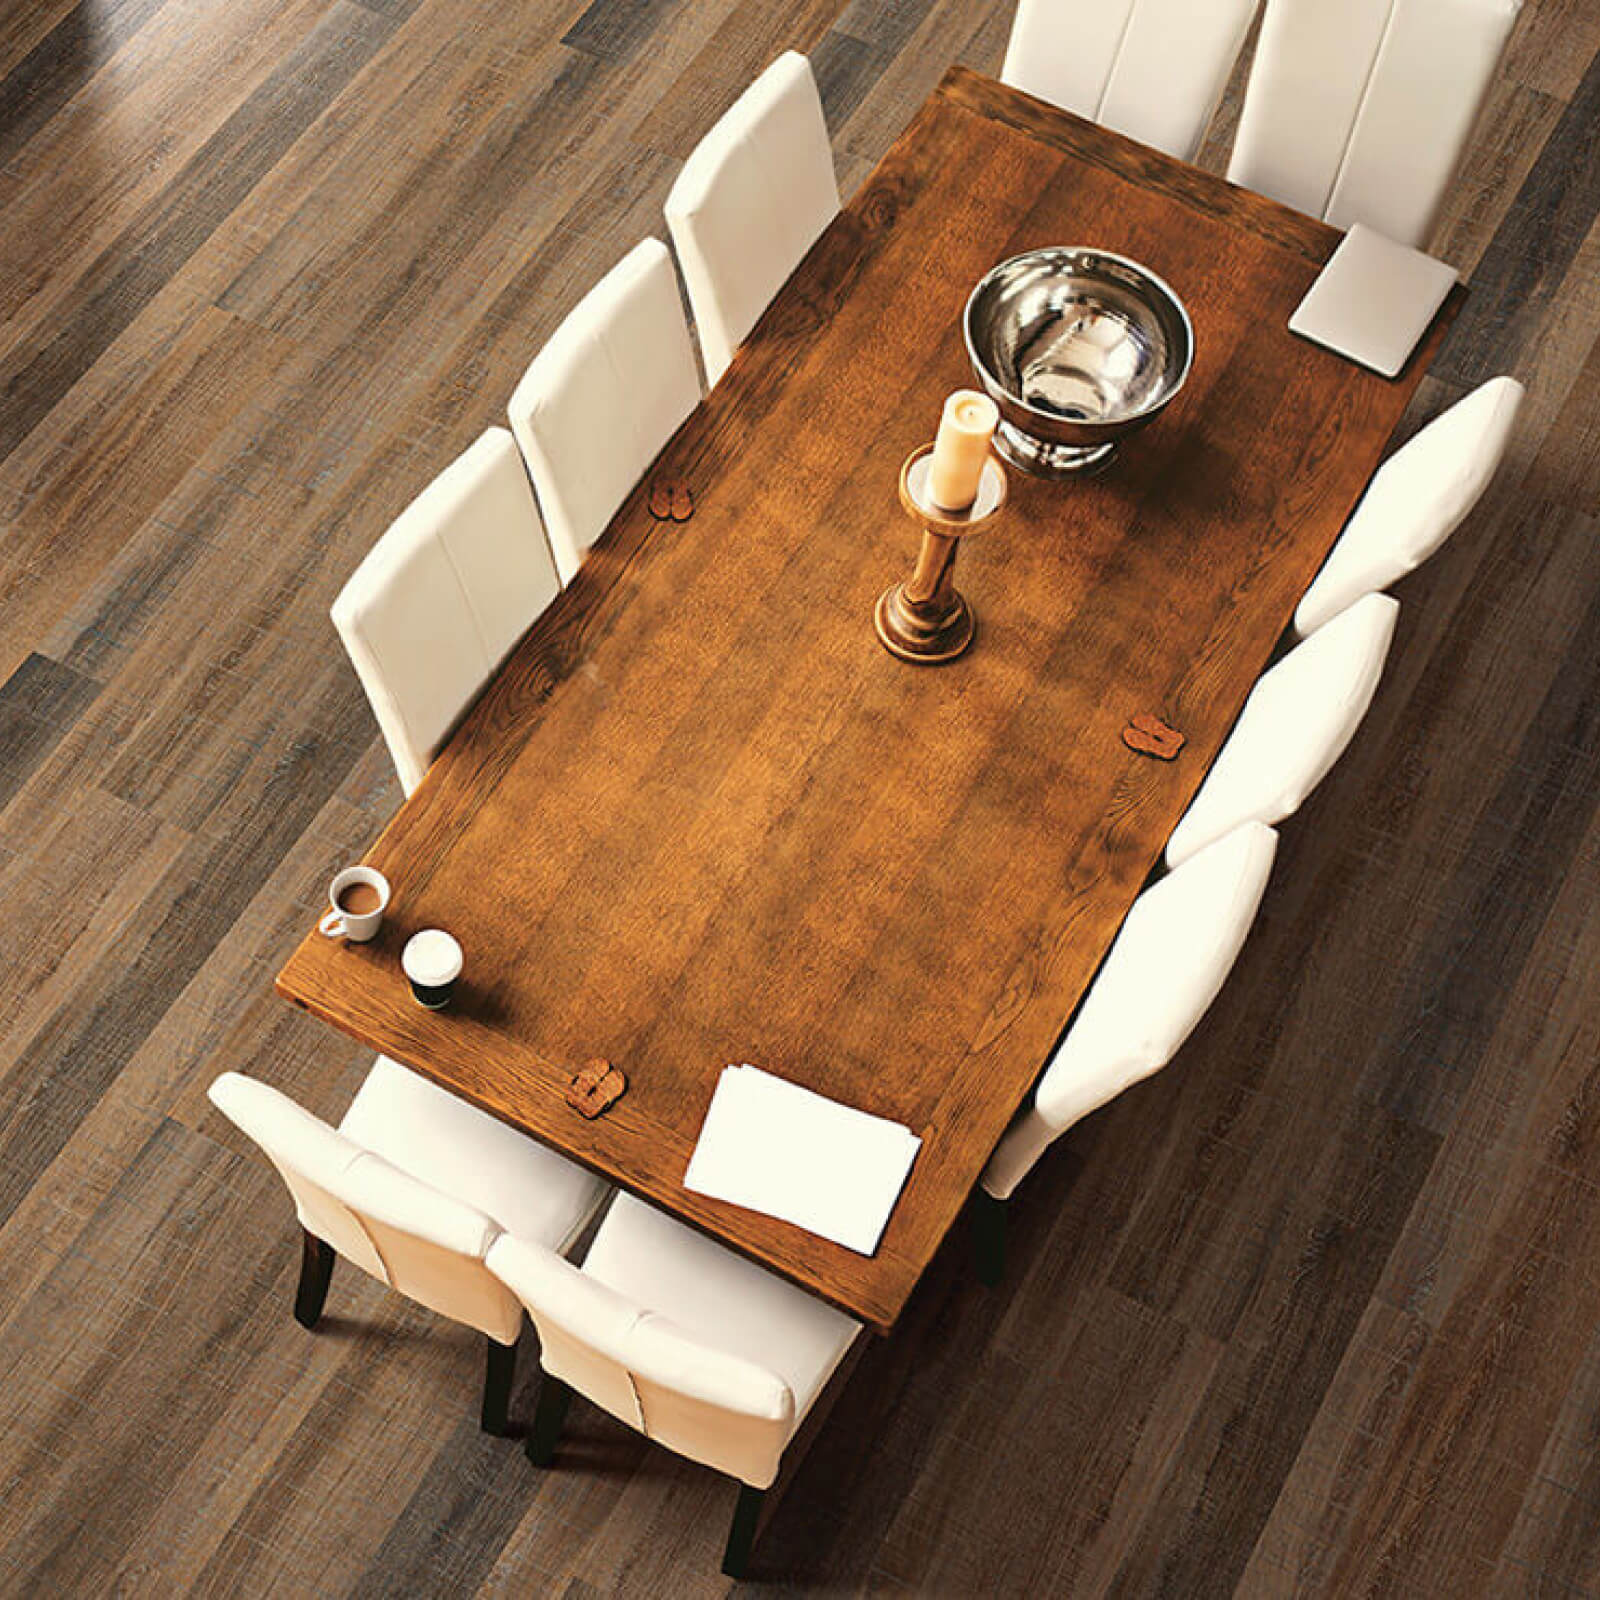 Dining room flooring | Shans Carpets And Fine Flooring Inc